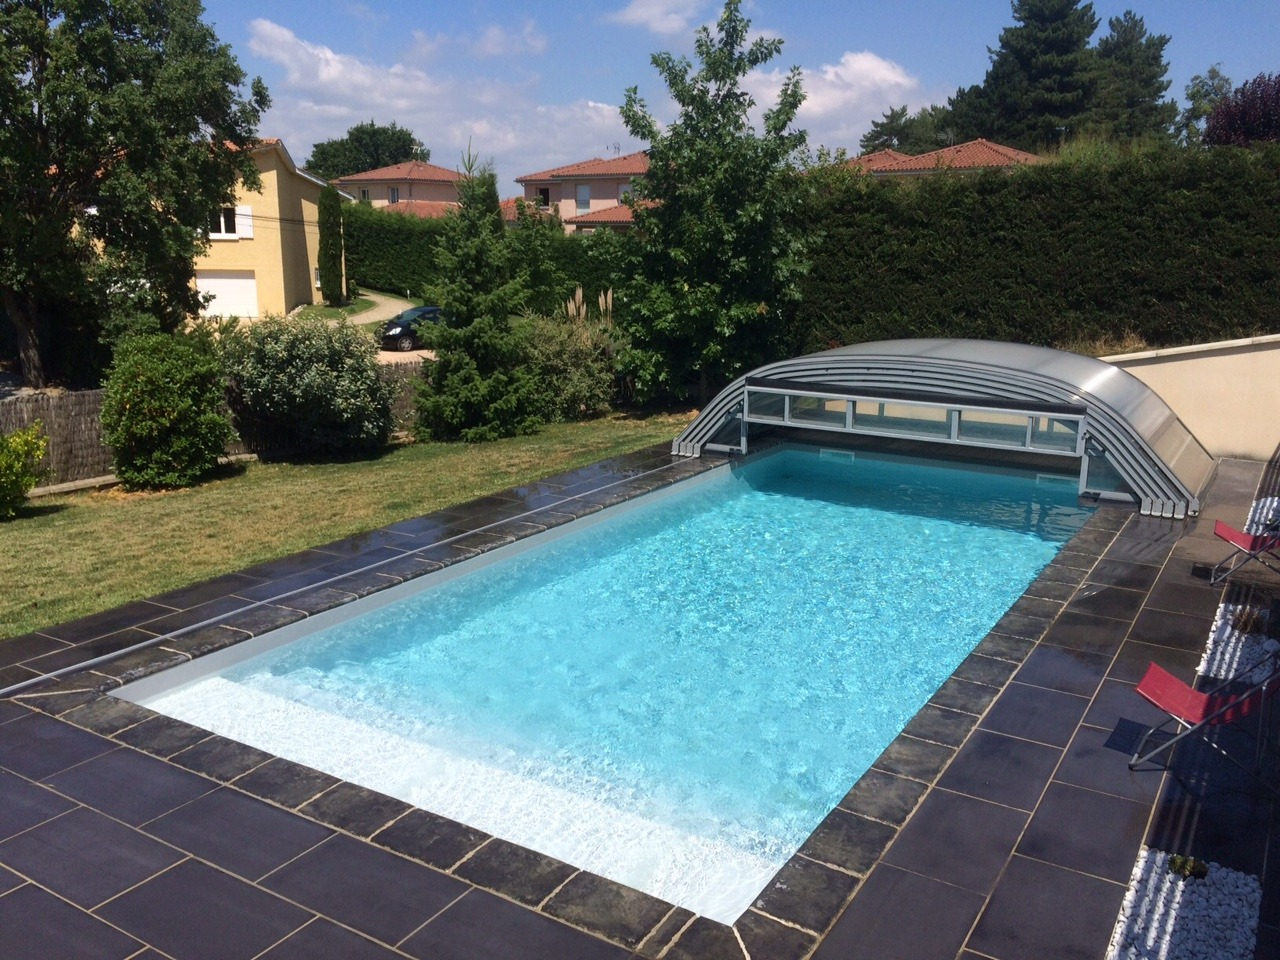 Elitys mianso abri de piscine bas t lescopique ec 39 creation Prix d un abris de piscine